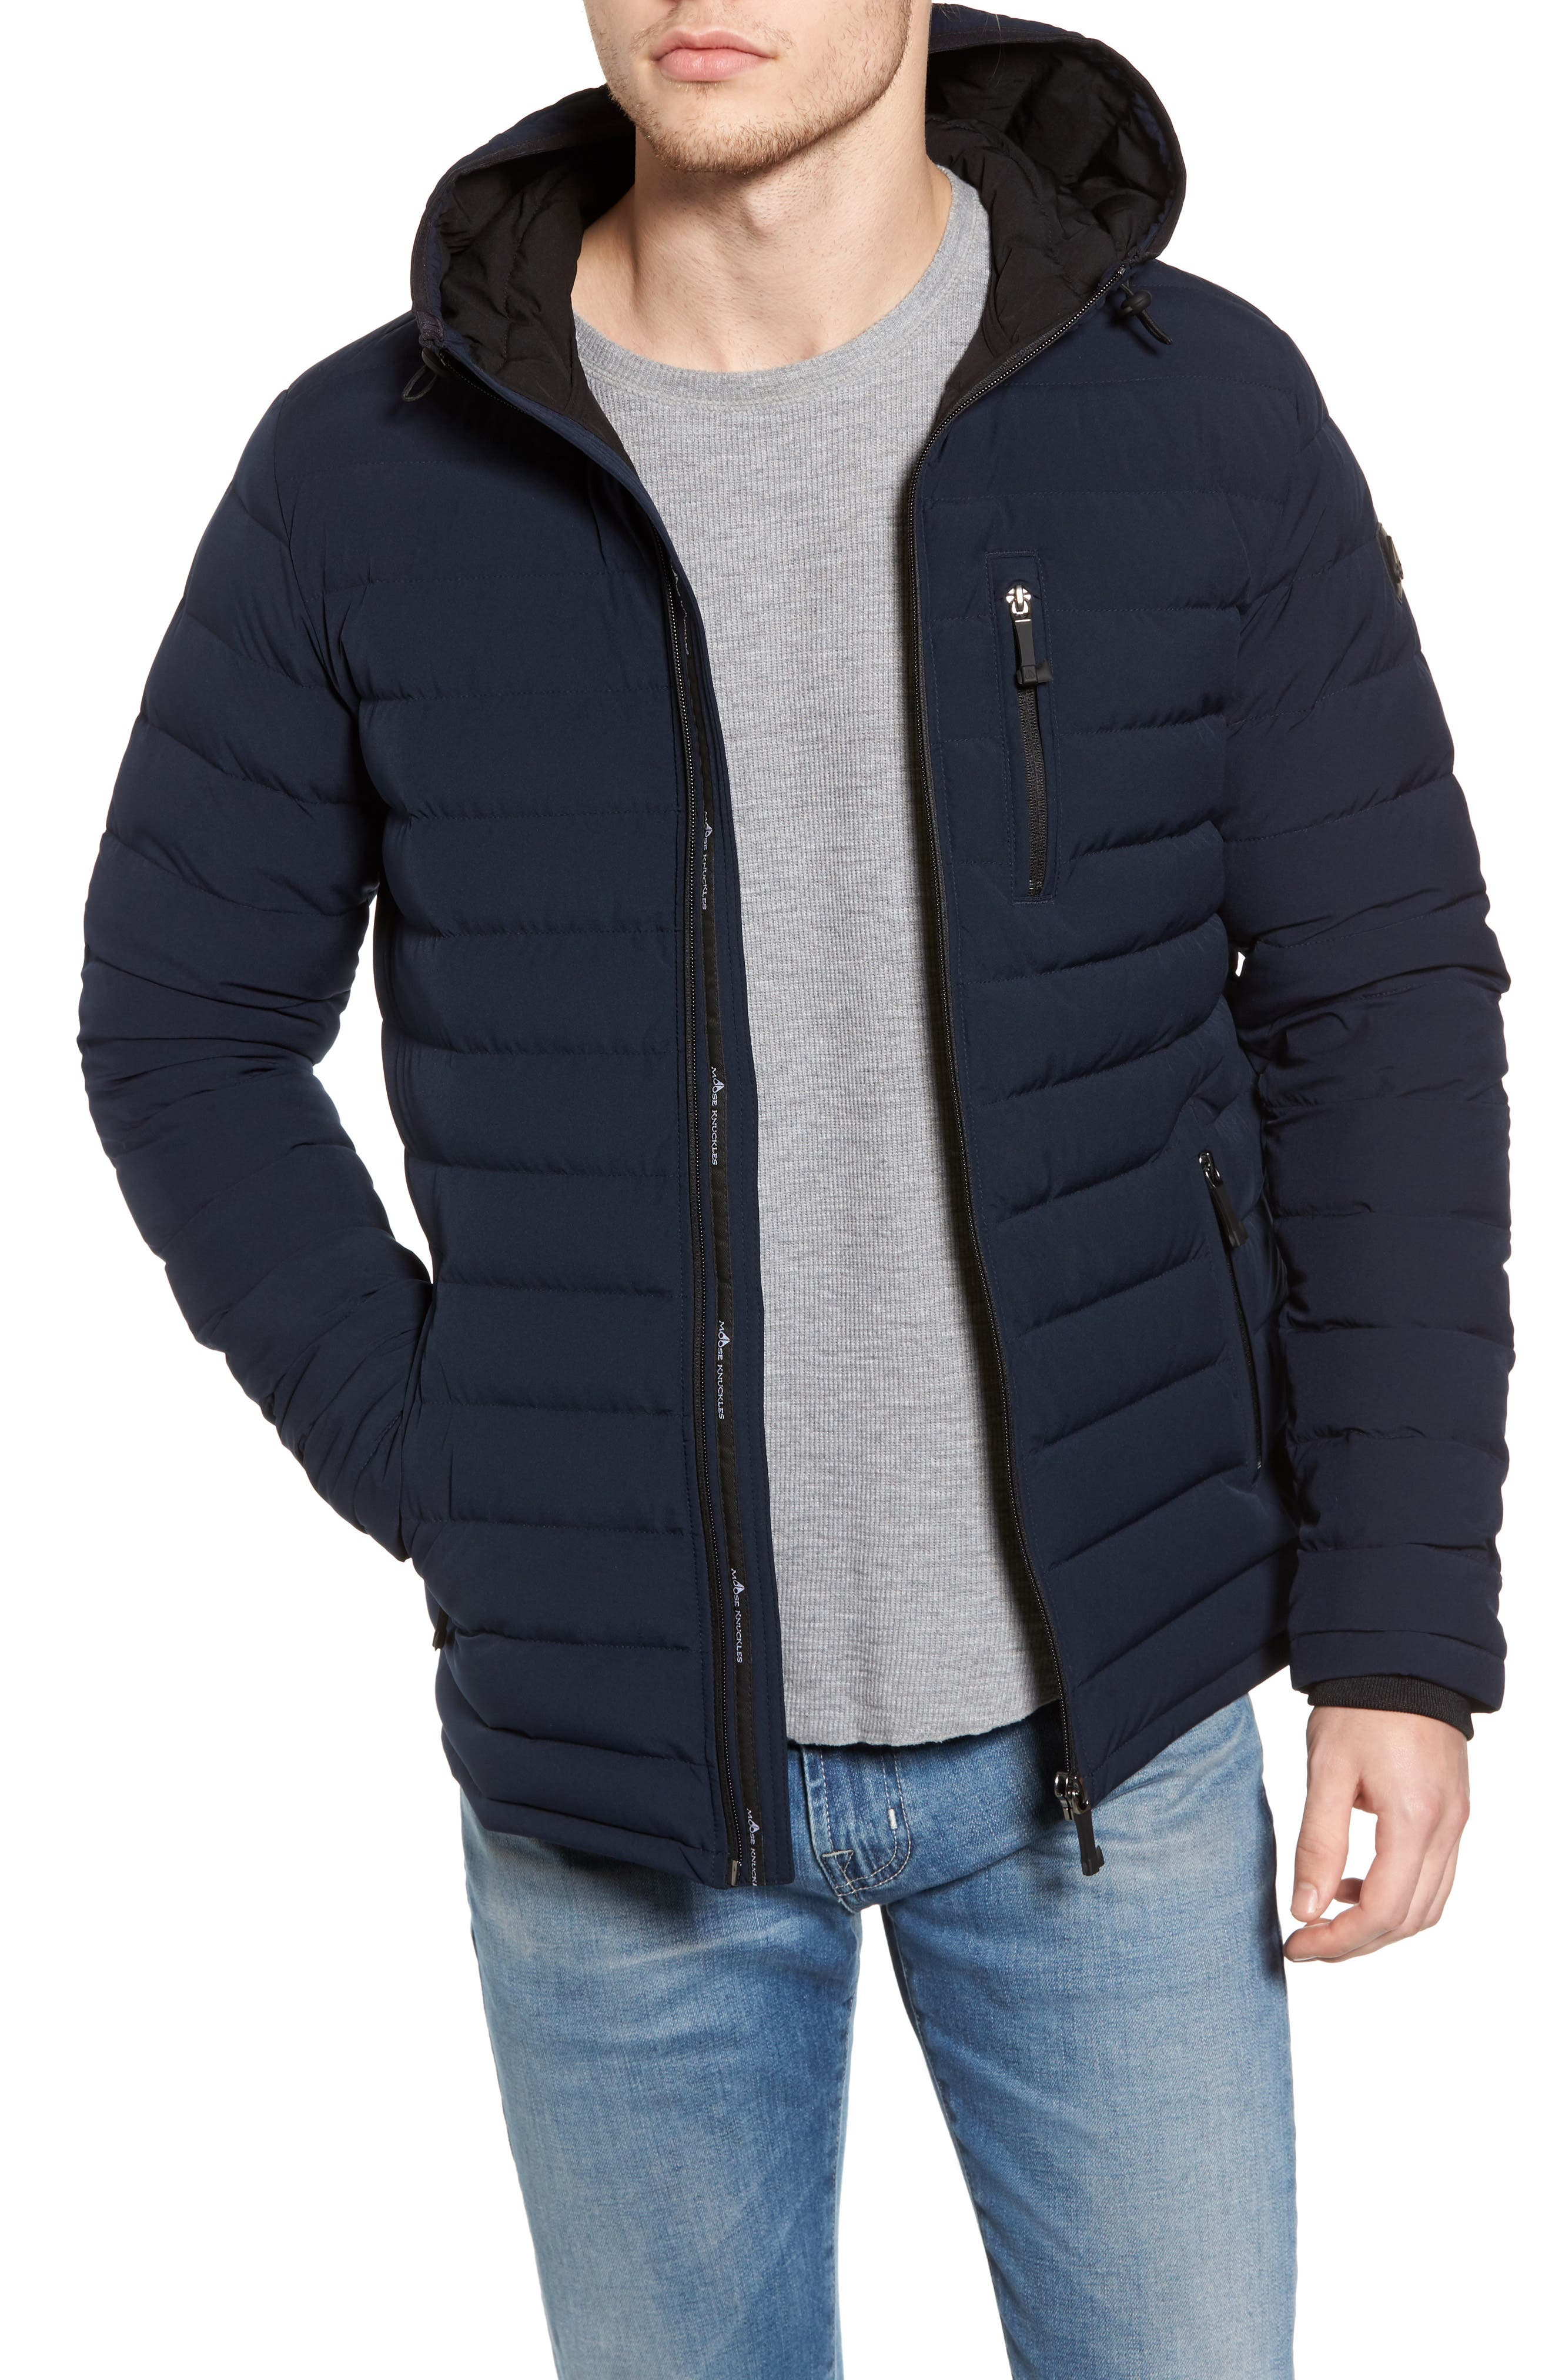 Moose Knuckles Fullcrest Quilted Down Jacket | Nordstrom : quilted down jacket - Adamdwight.com